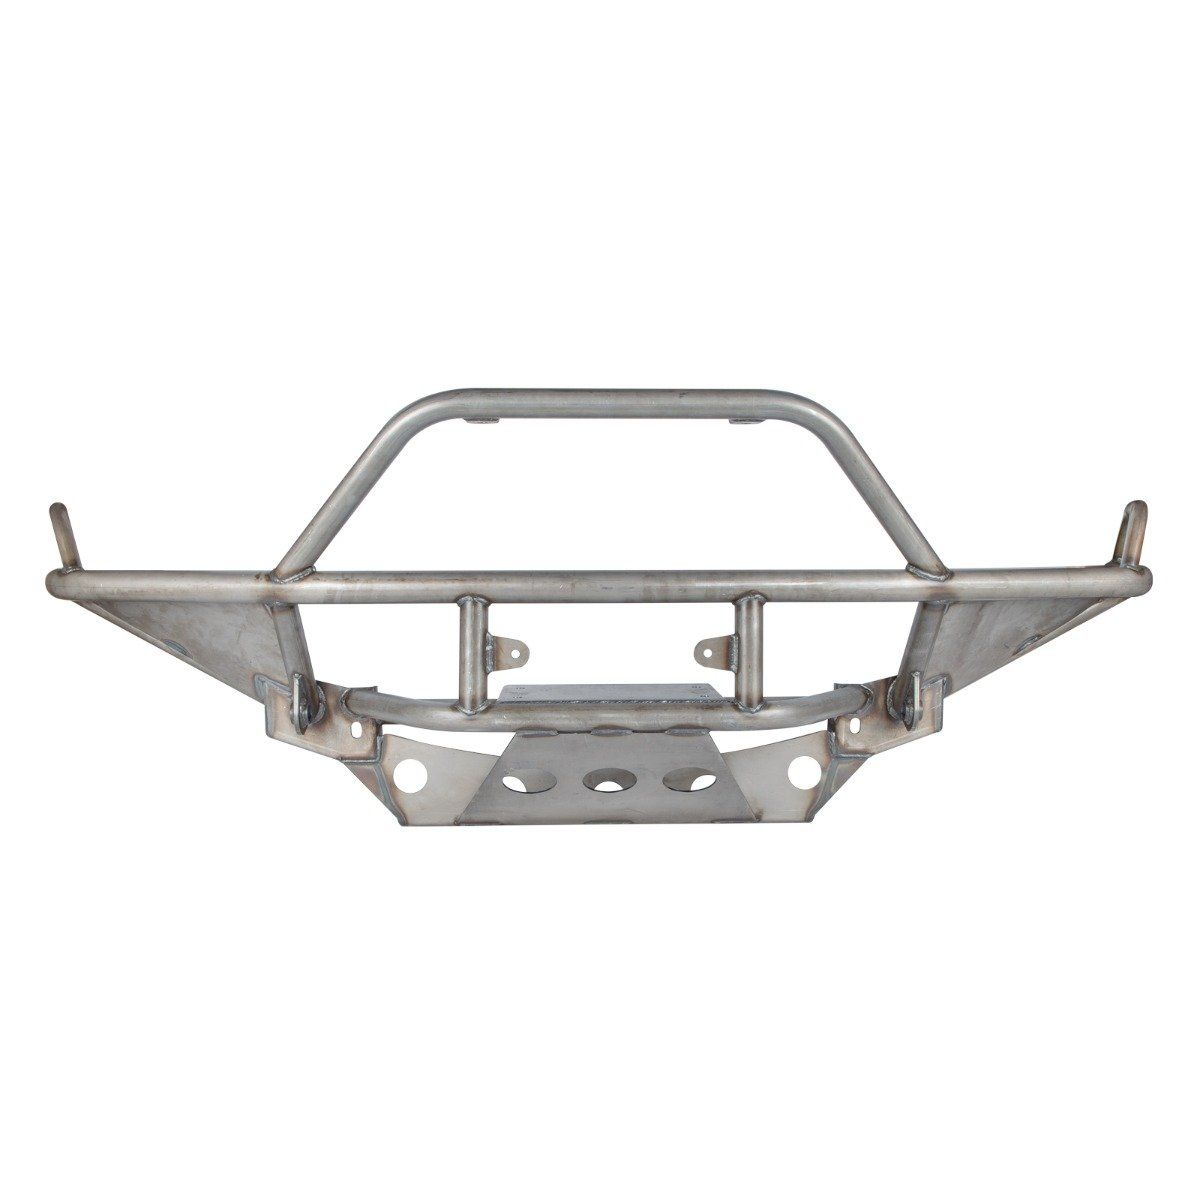 All-Pro Off-Road Tacoma Tube Style Front Bumper '95-04